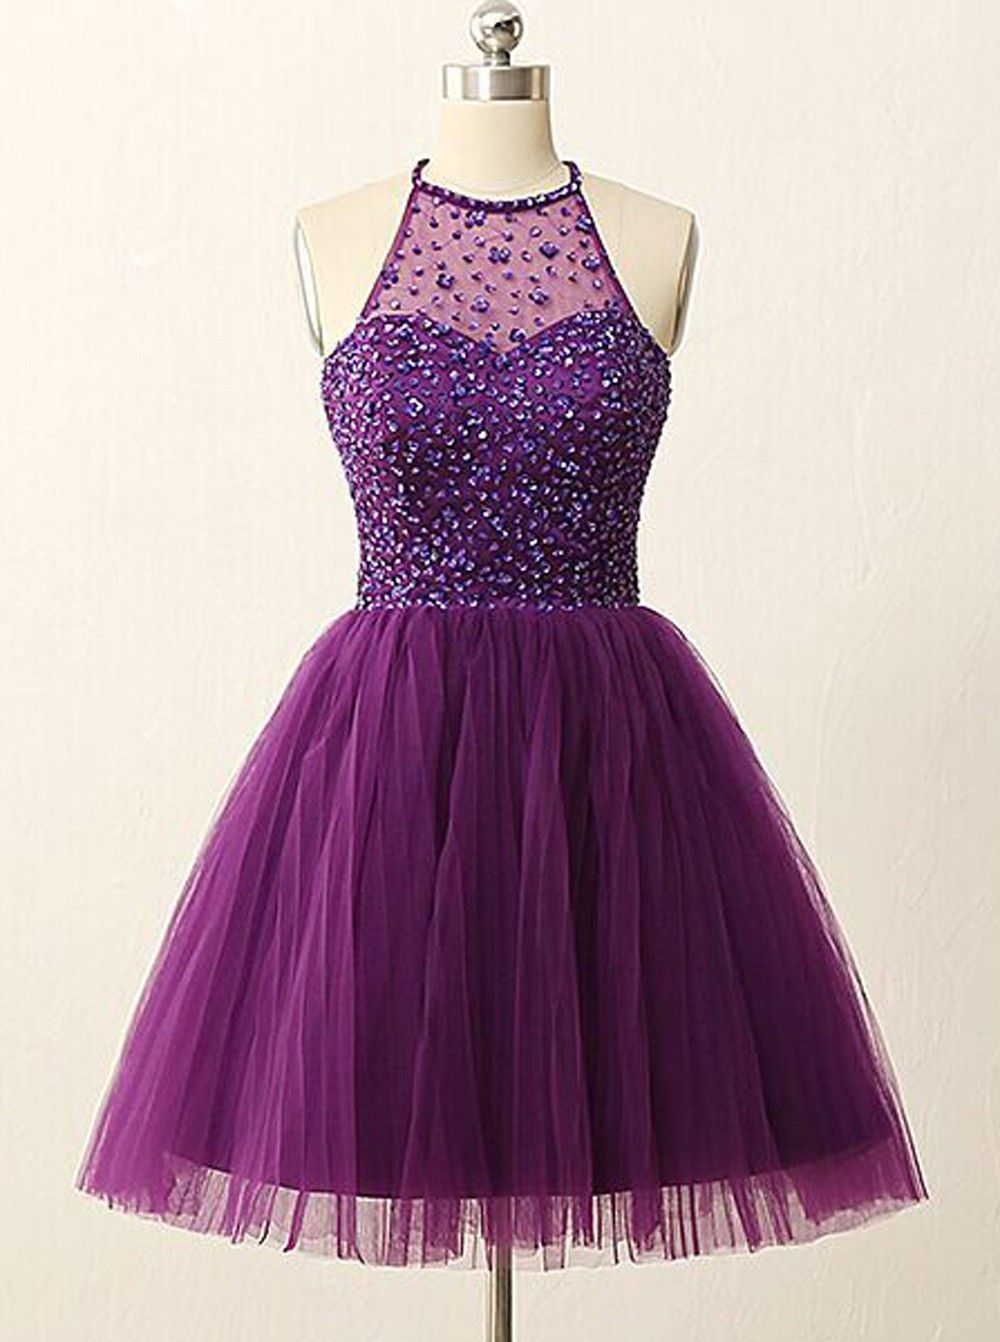 Homecoming dressshort prom dresspurple prom dressesparty dress